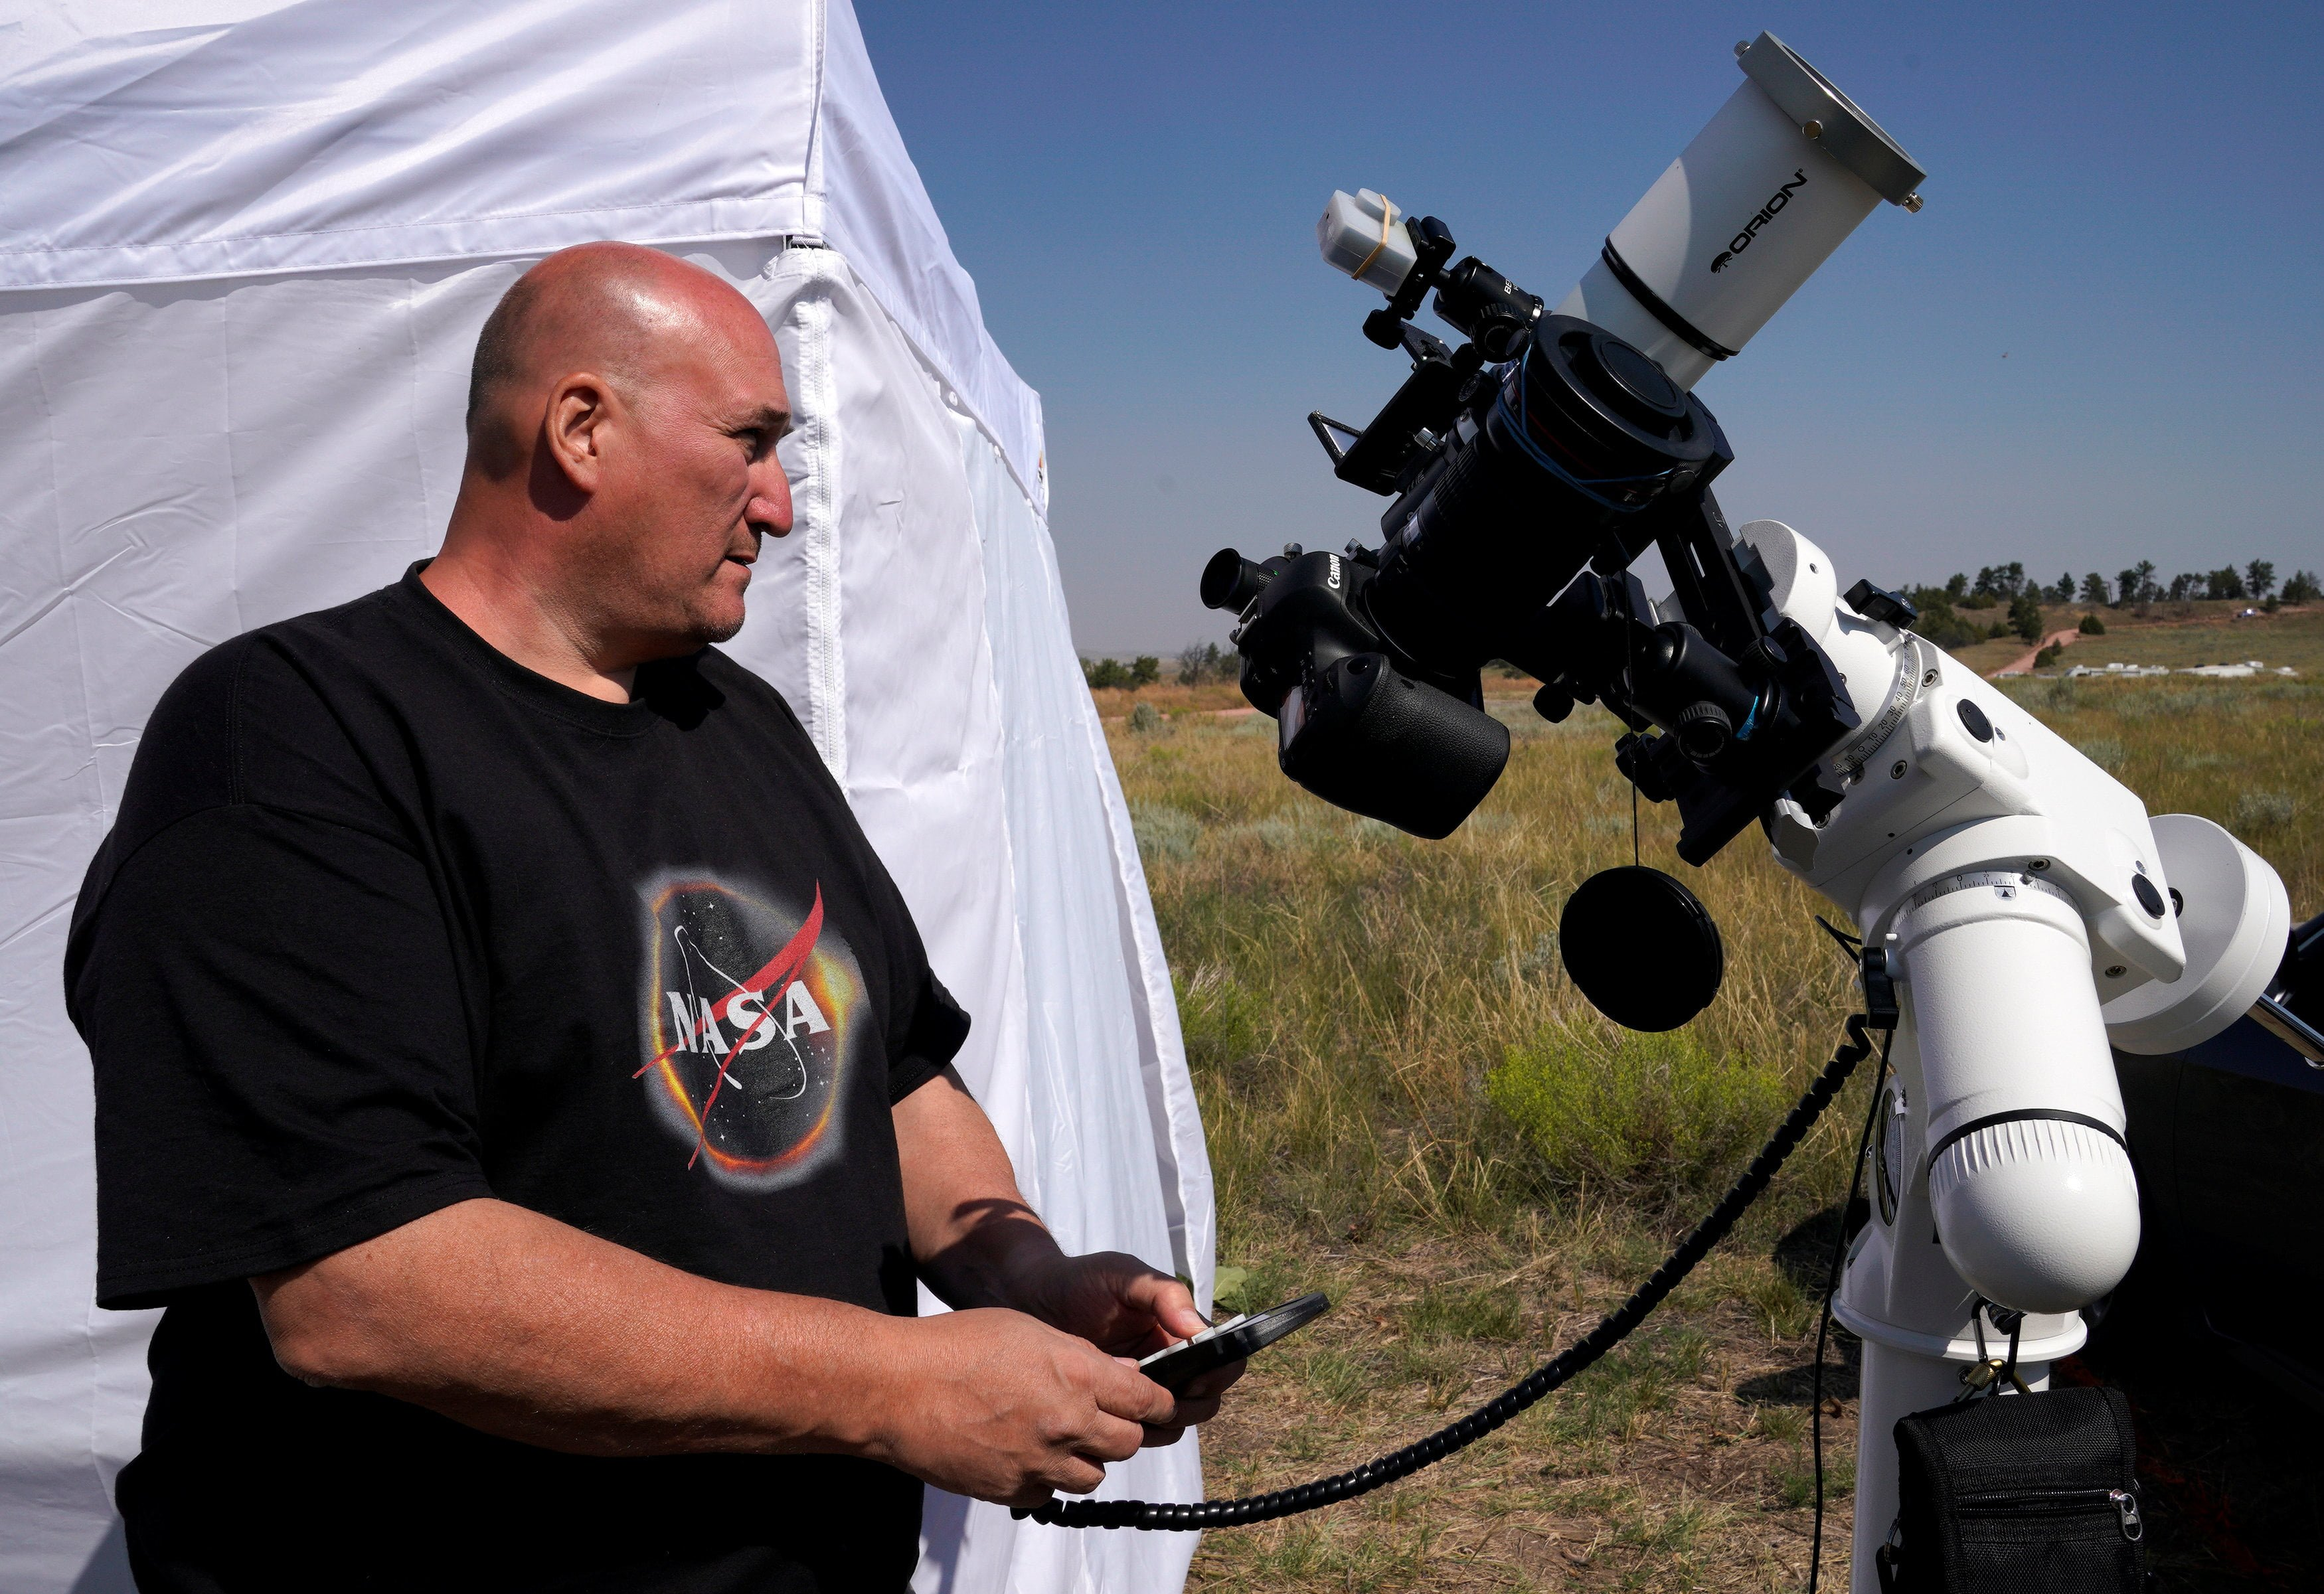 Rick Roty works with his telescope in a designated eclipse viewing area in a campground near Guernsey